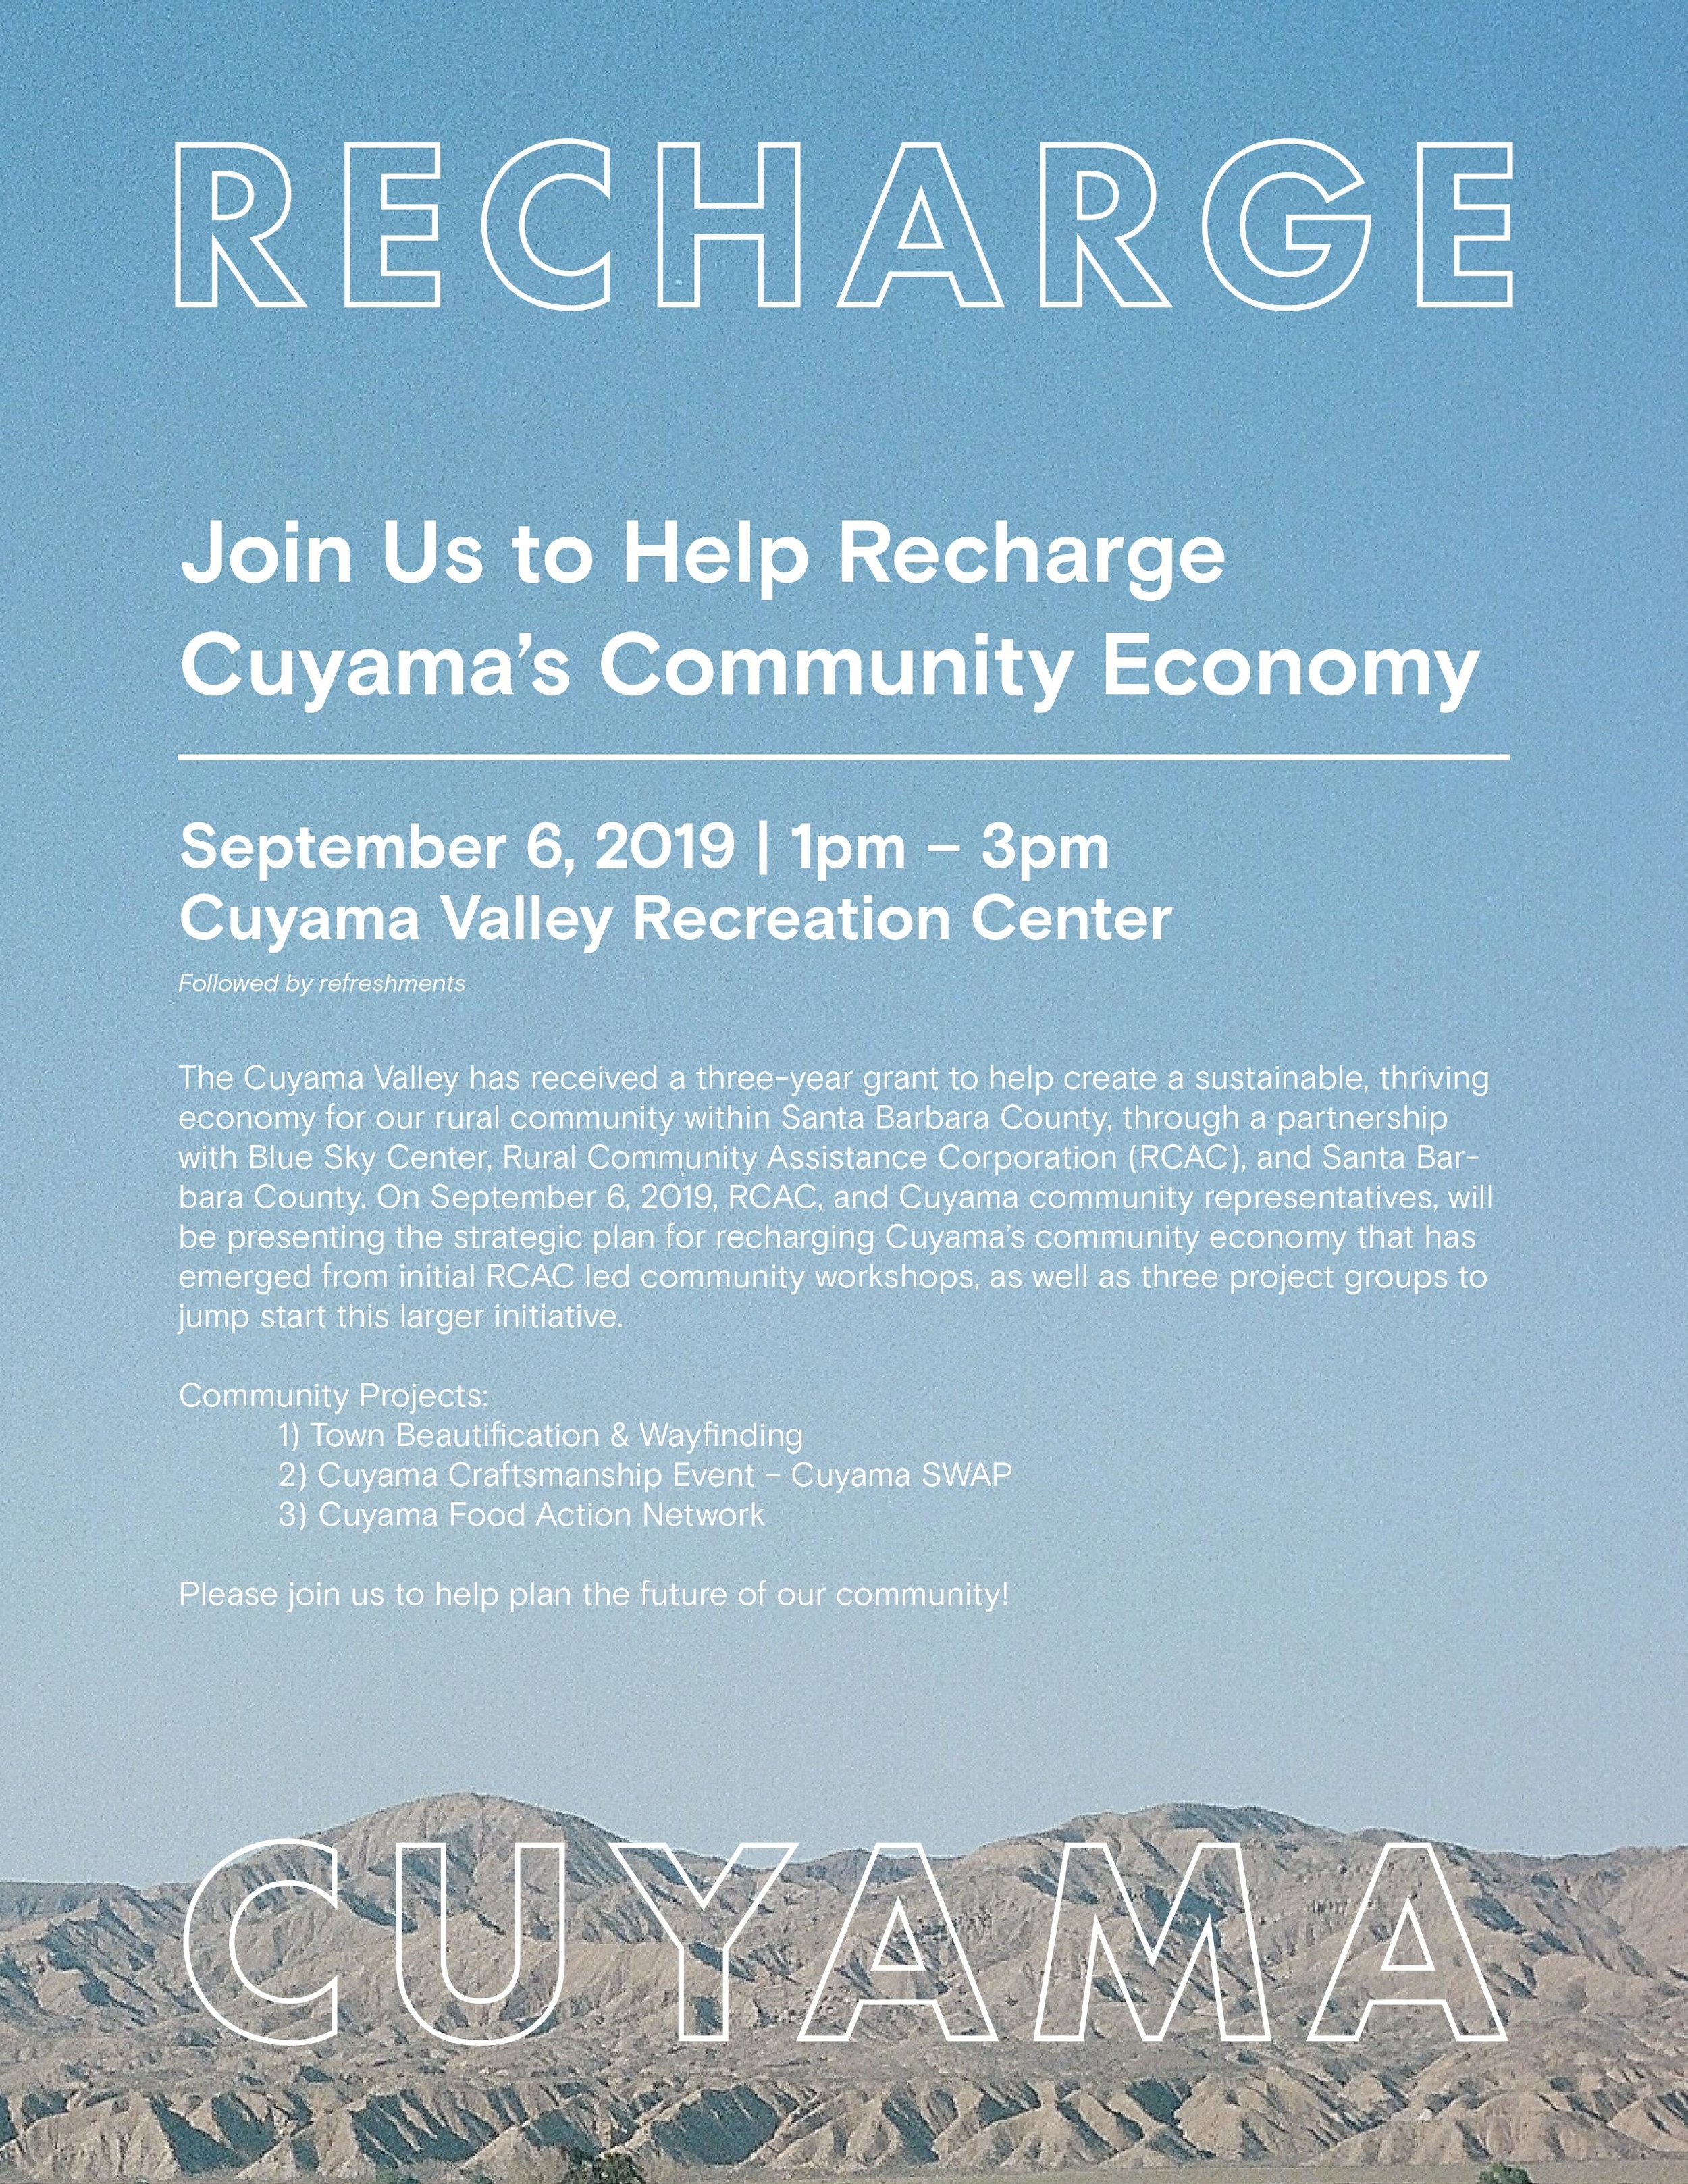 RCAC will be hosting its fourth and final Recharge our Community Economy Workshop on September 6th from 1PM-3PM at Montgomery Hall in New Cuyama. This final retreat will be a big day, with the beginning implementation of a Cuyama Valley strategic plan and a presentation of three project groups that have emerged from our workshops: 1) Town Beautification & Wayfinding 2) Cuyama Craftsmanship Event - Cuyama Swap! 3) Cuyama Valley Food Action Network.